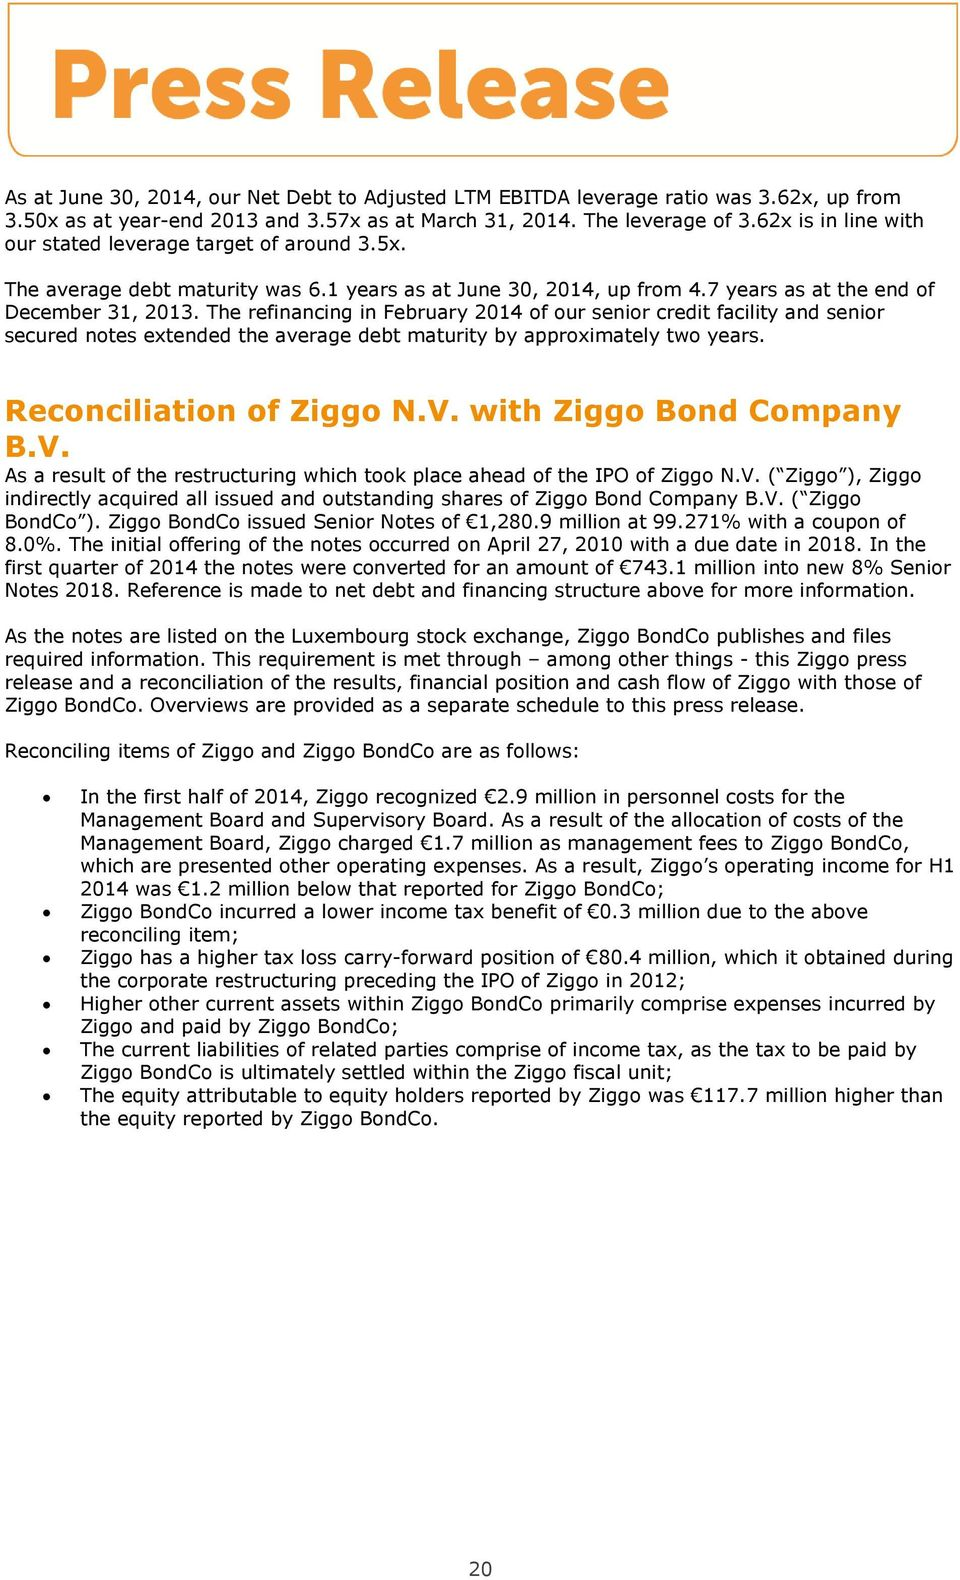 The refinancing in February 2014 of our senior credit facility and senior secured notes extended the average debt maturity by approximately two years. Reconciliation of Ziggo N.V.